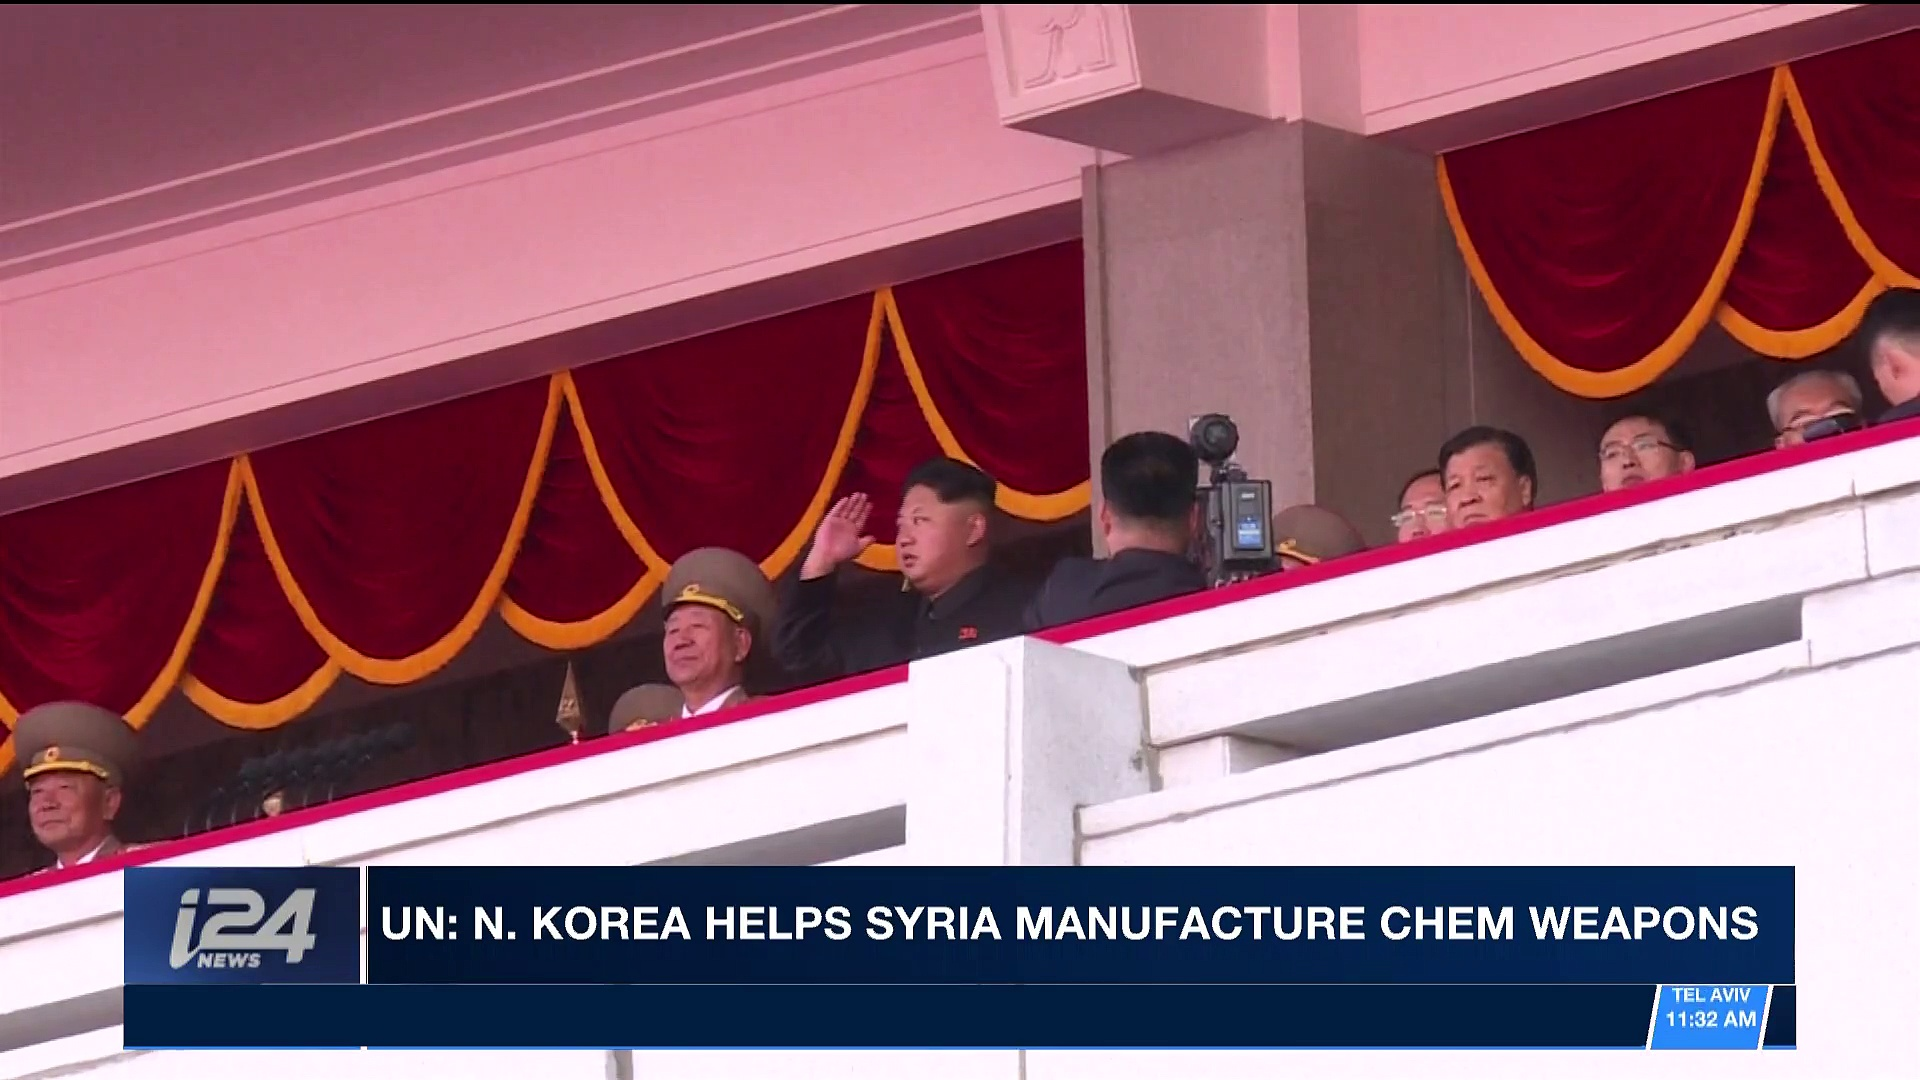 i24NEWS DESK | UN: N. Korea helps Syria manufacture chem weapons | Wednesday, February 28th 2018